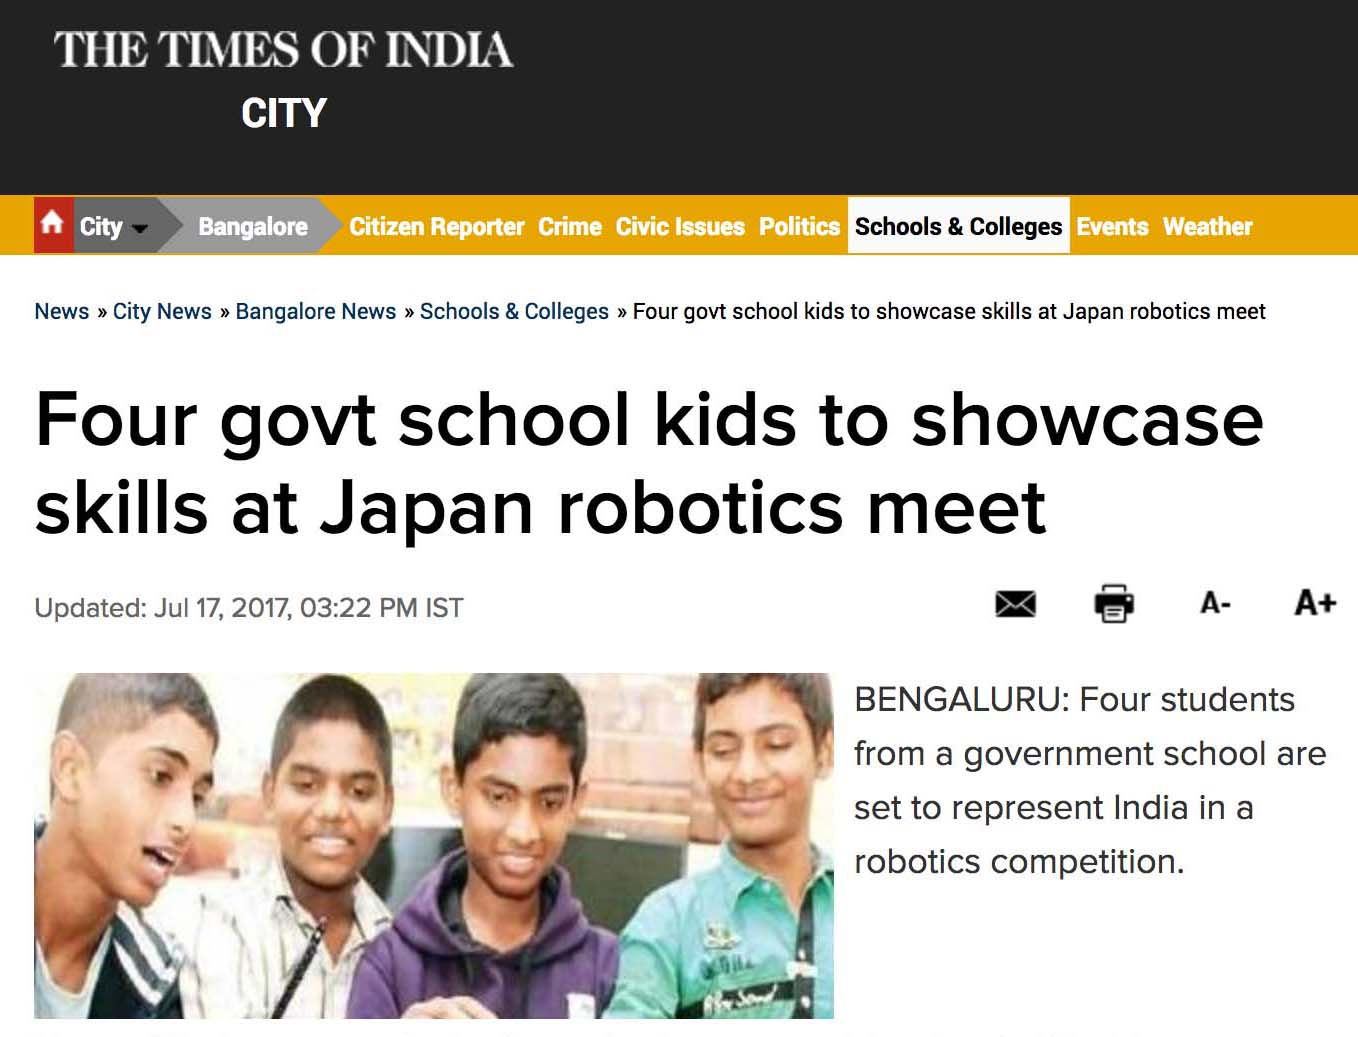 Four Government school kids to showcase skills at Japan robotics meet